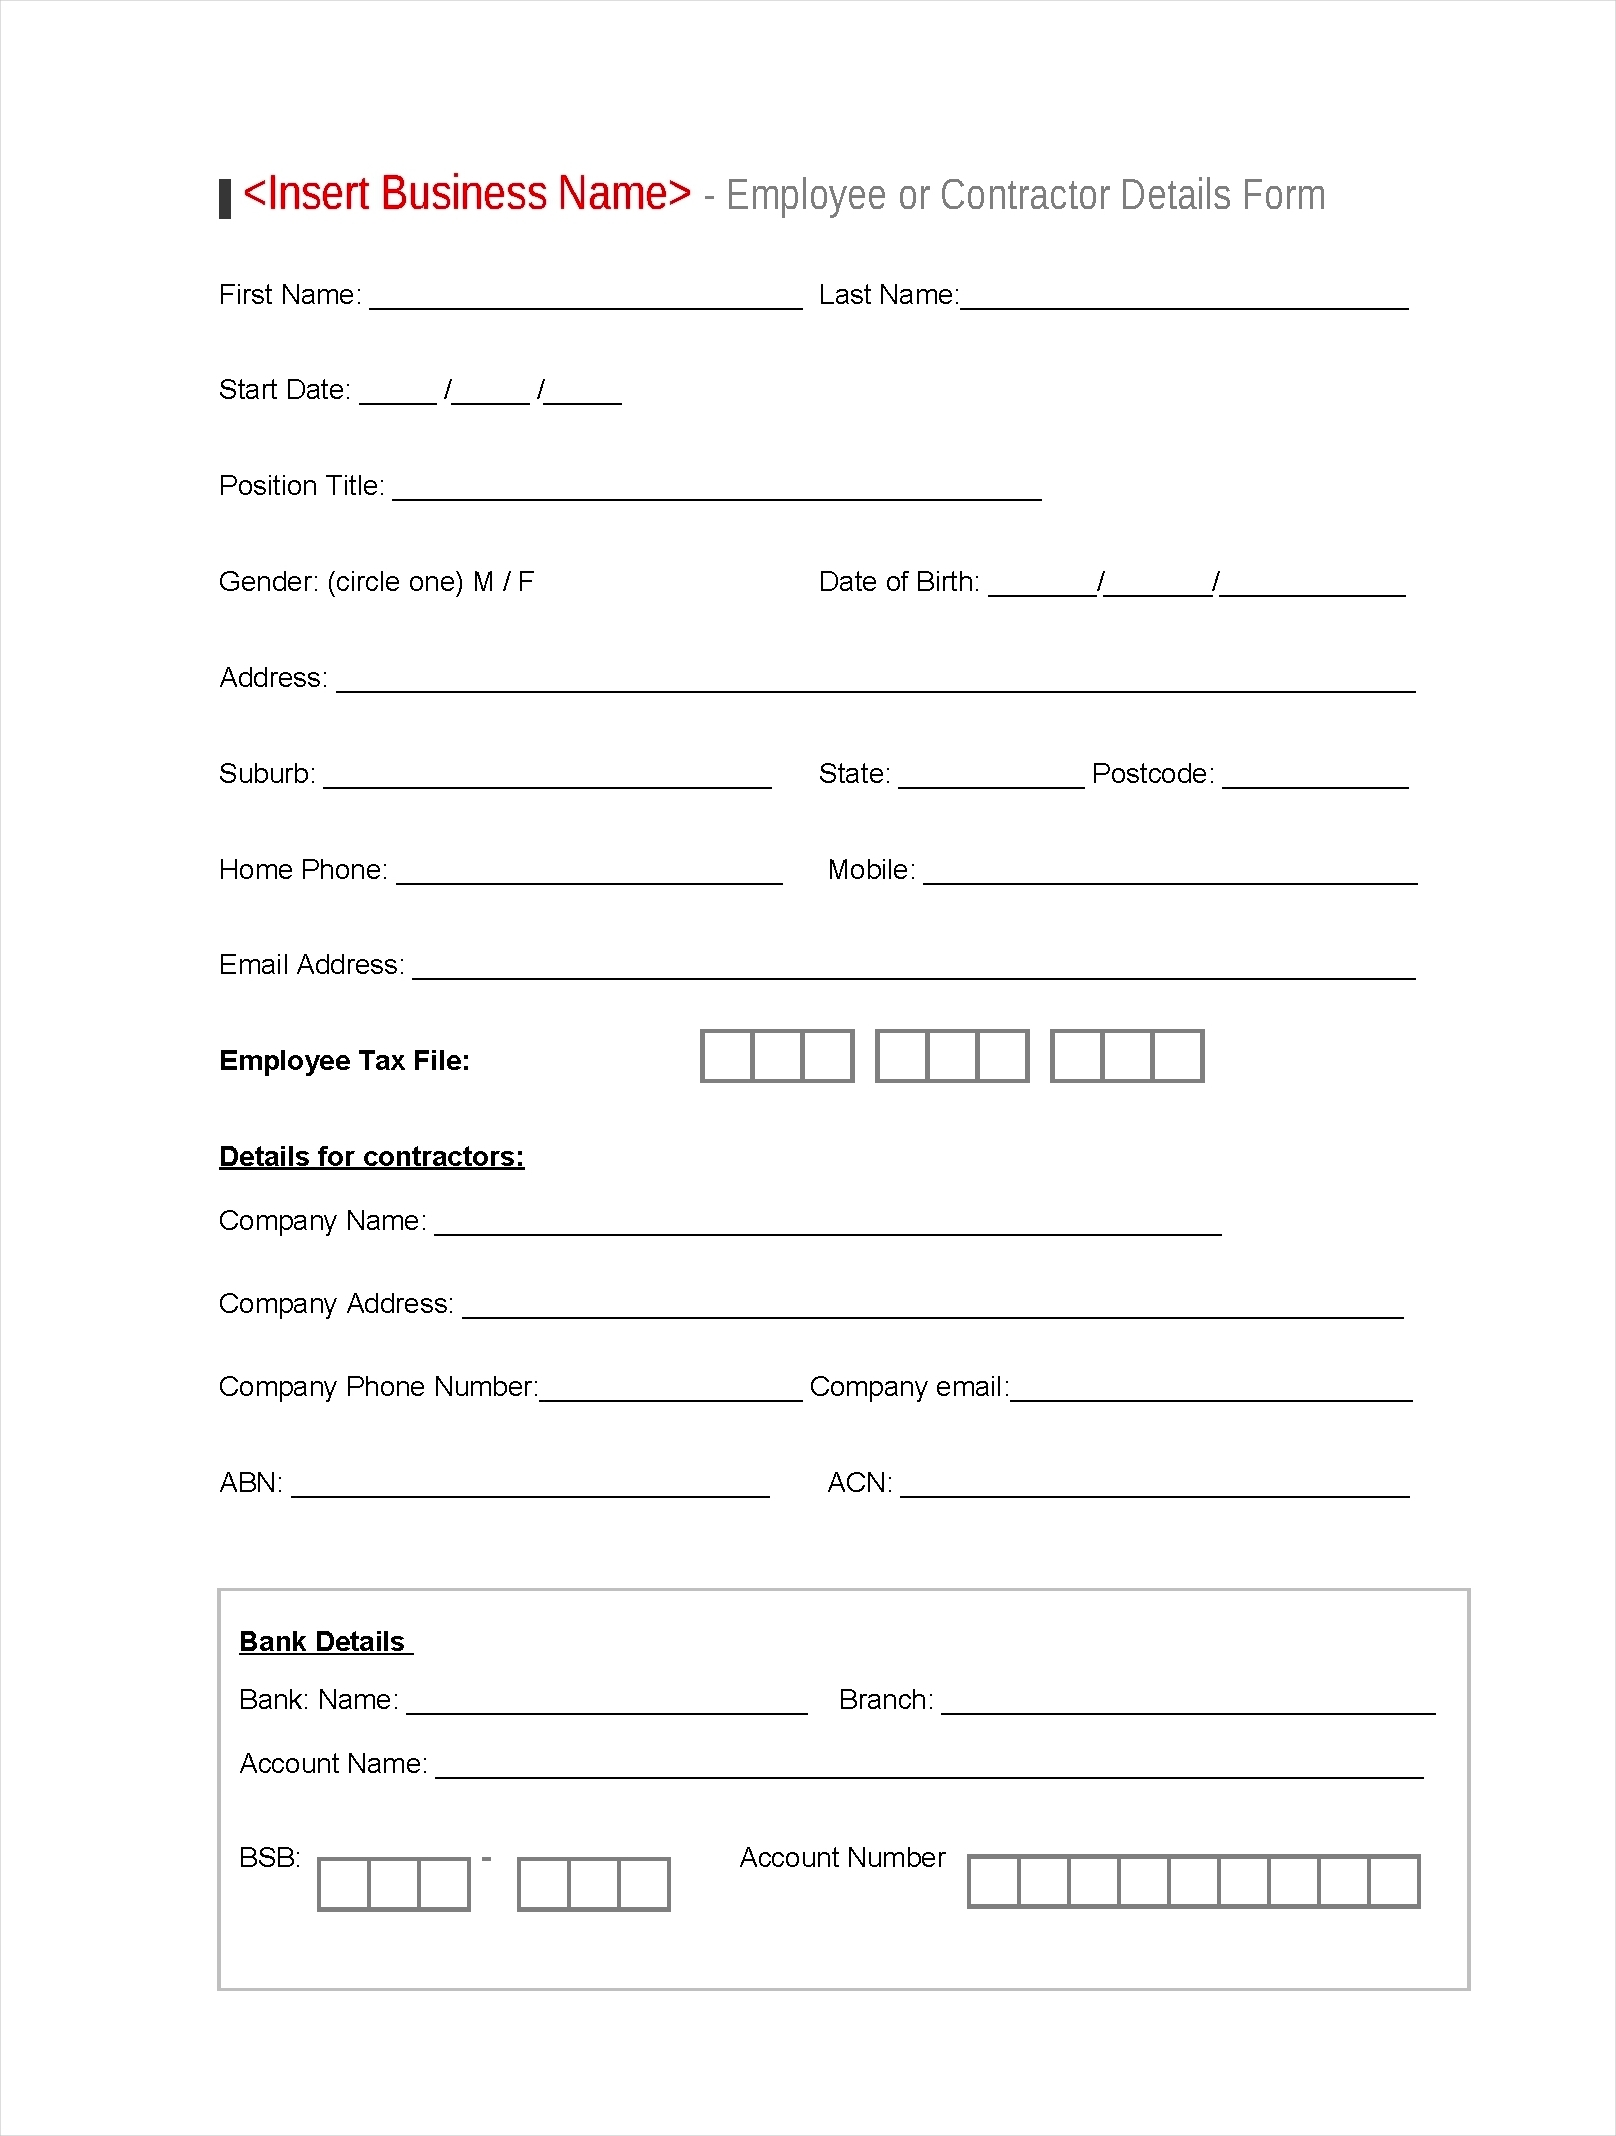 employee details form template